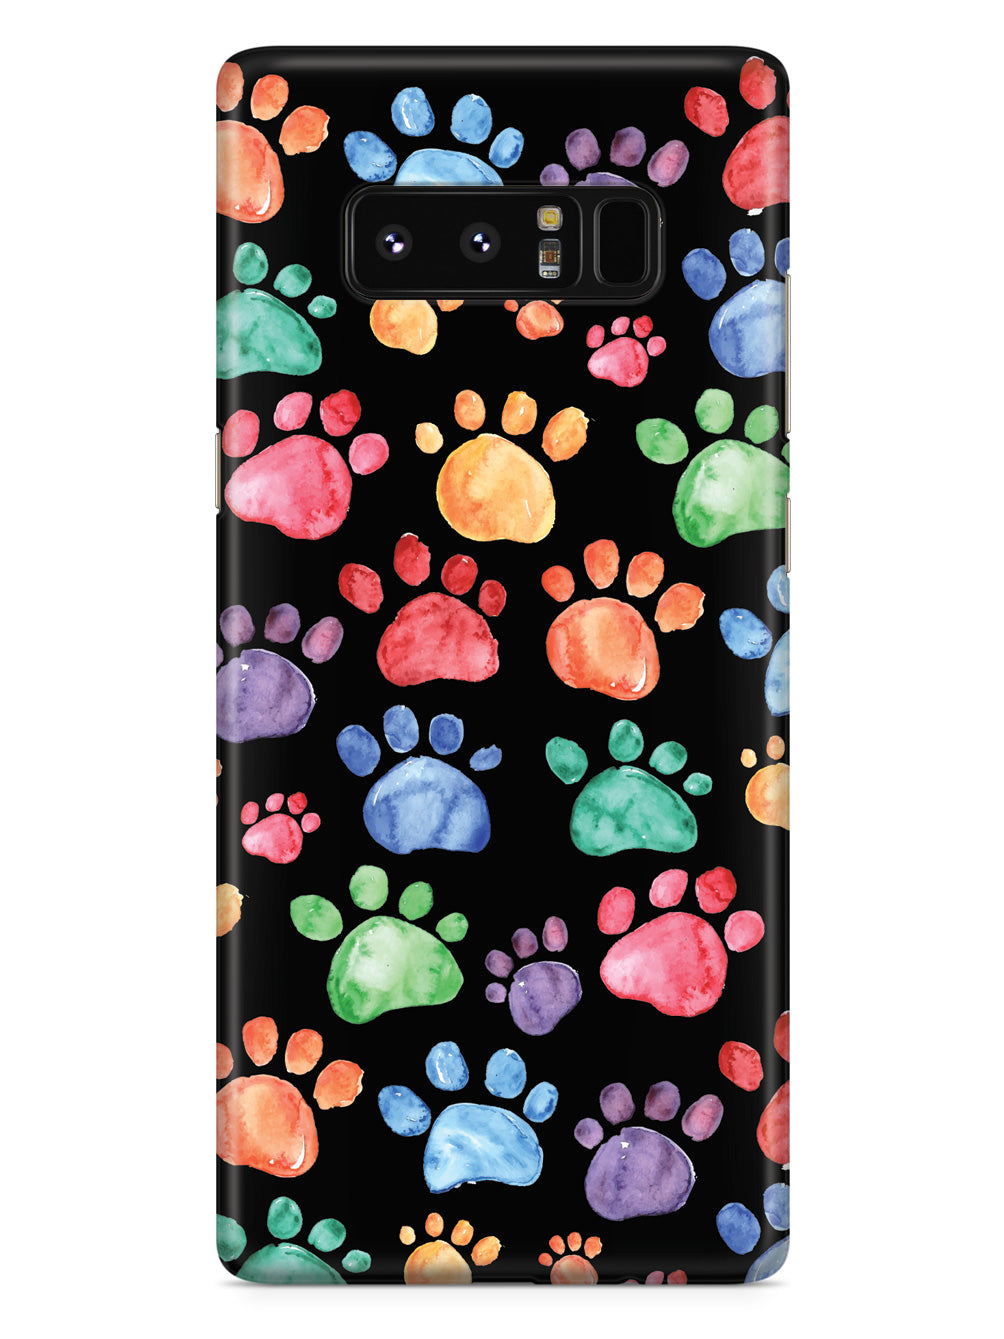 Watercolor Paw Prints - Black Case